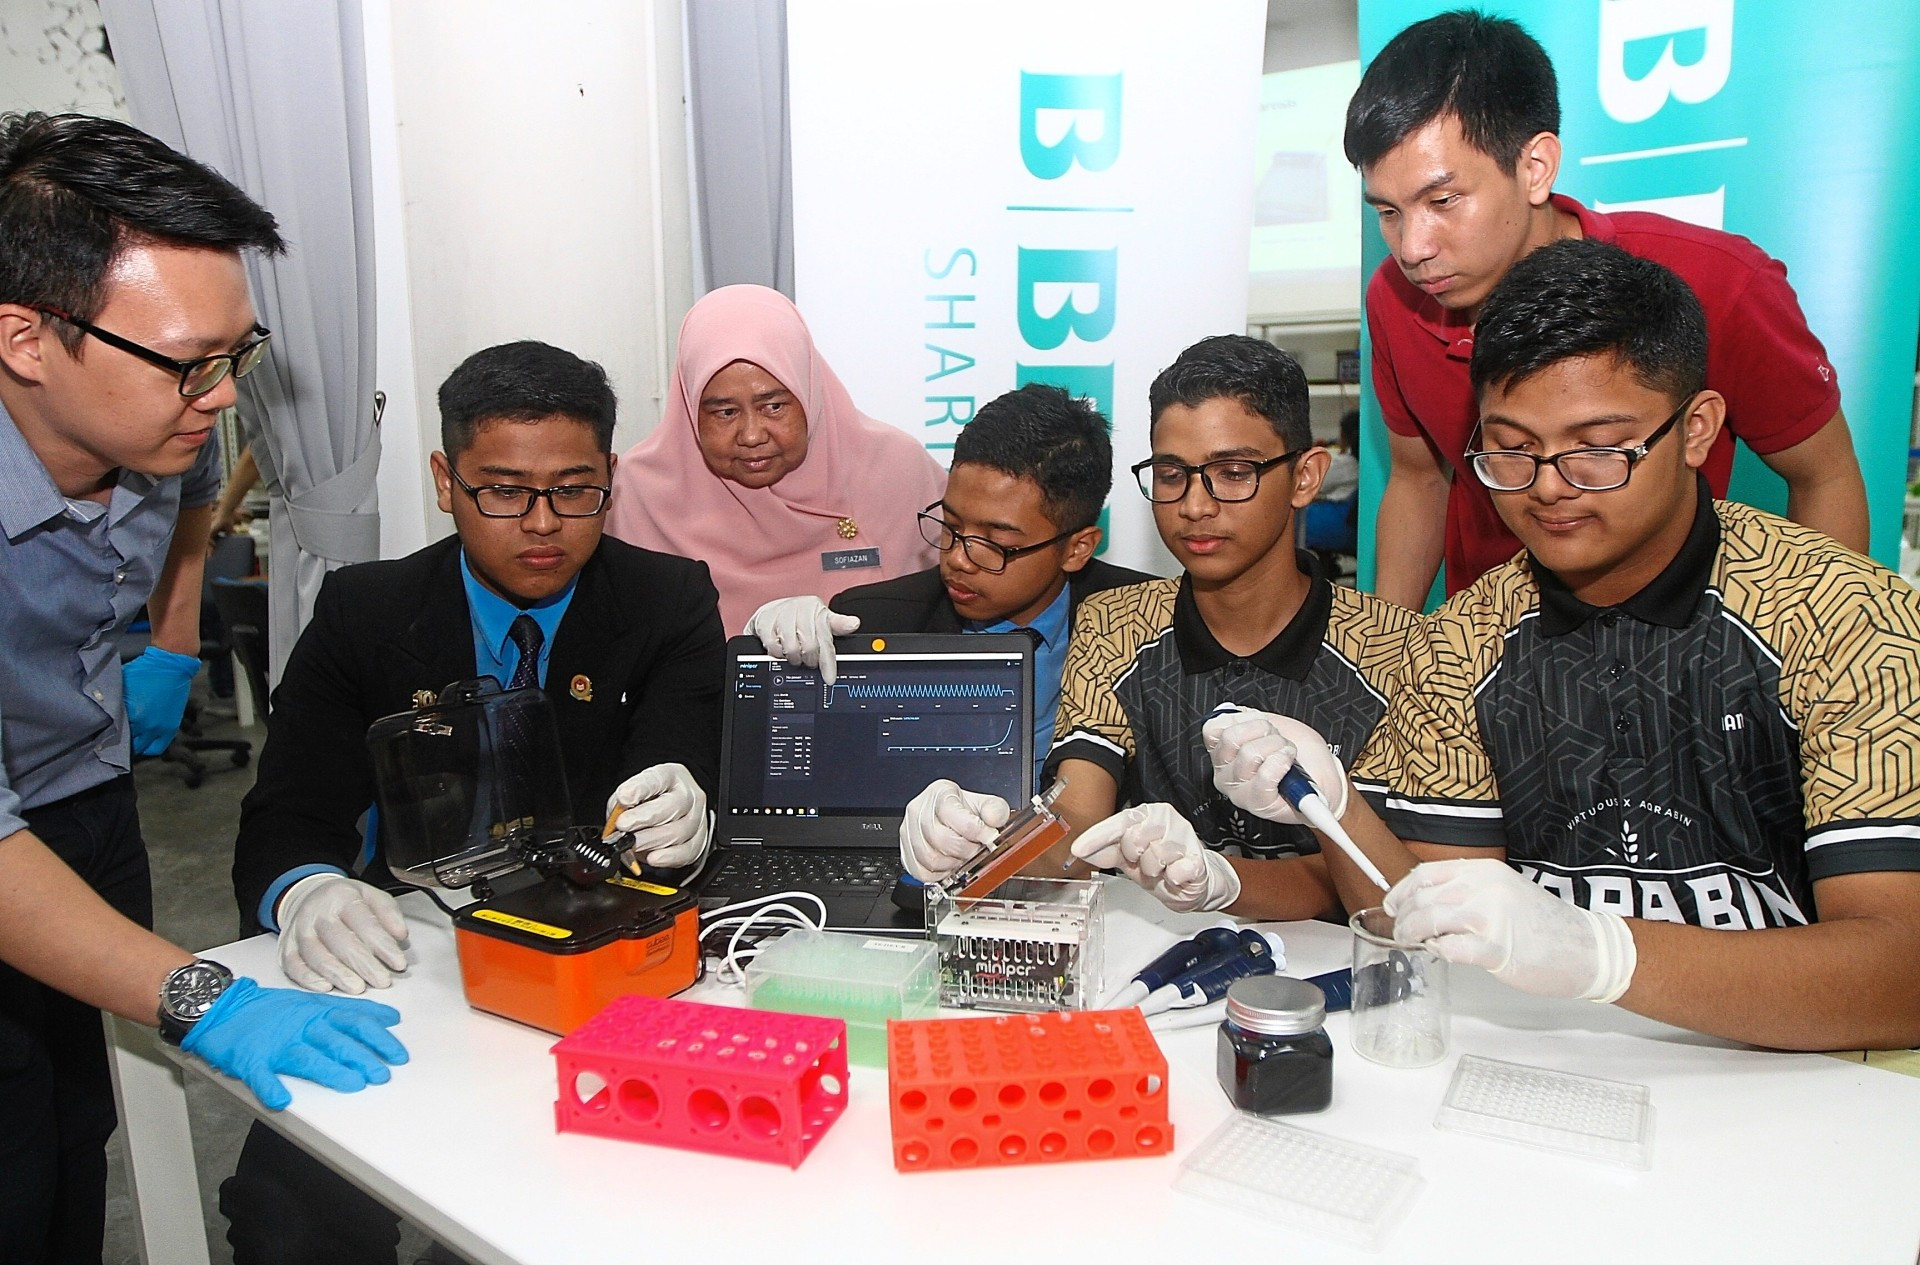 Penang Science Cluster staff Winson Koe (left, SMK Agama Al-Irshad biology teacher Sofiazan Mohd Yusof (3rd from left) and LIR Biotech Sdn Bhd business development executive Josiah Liew (2nd right) assisting students in using the DNA learning kits.